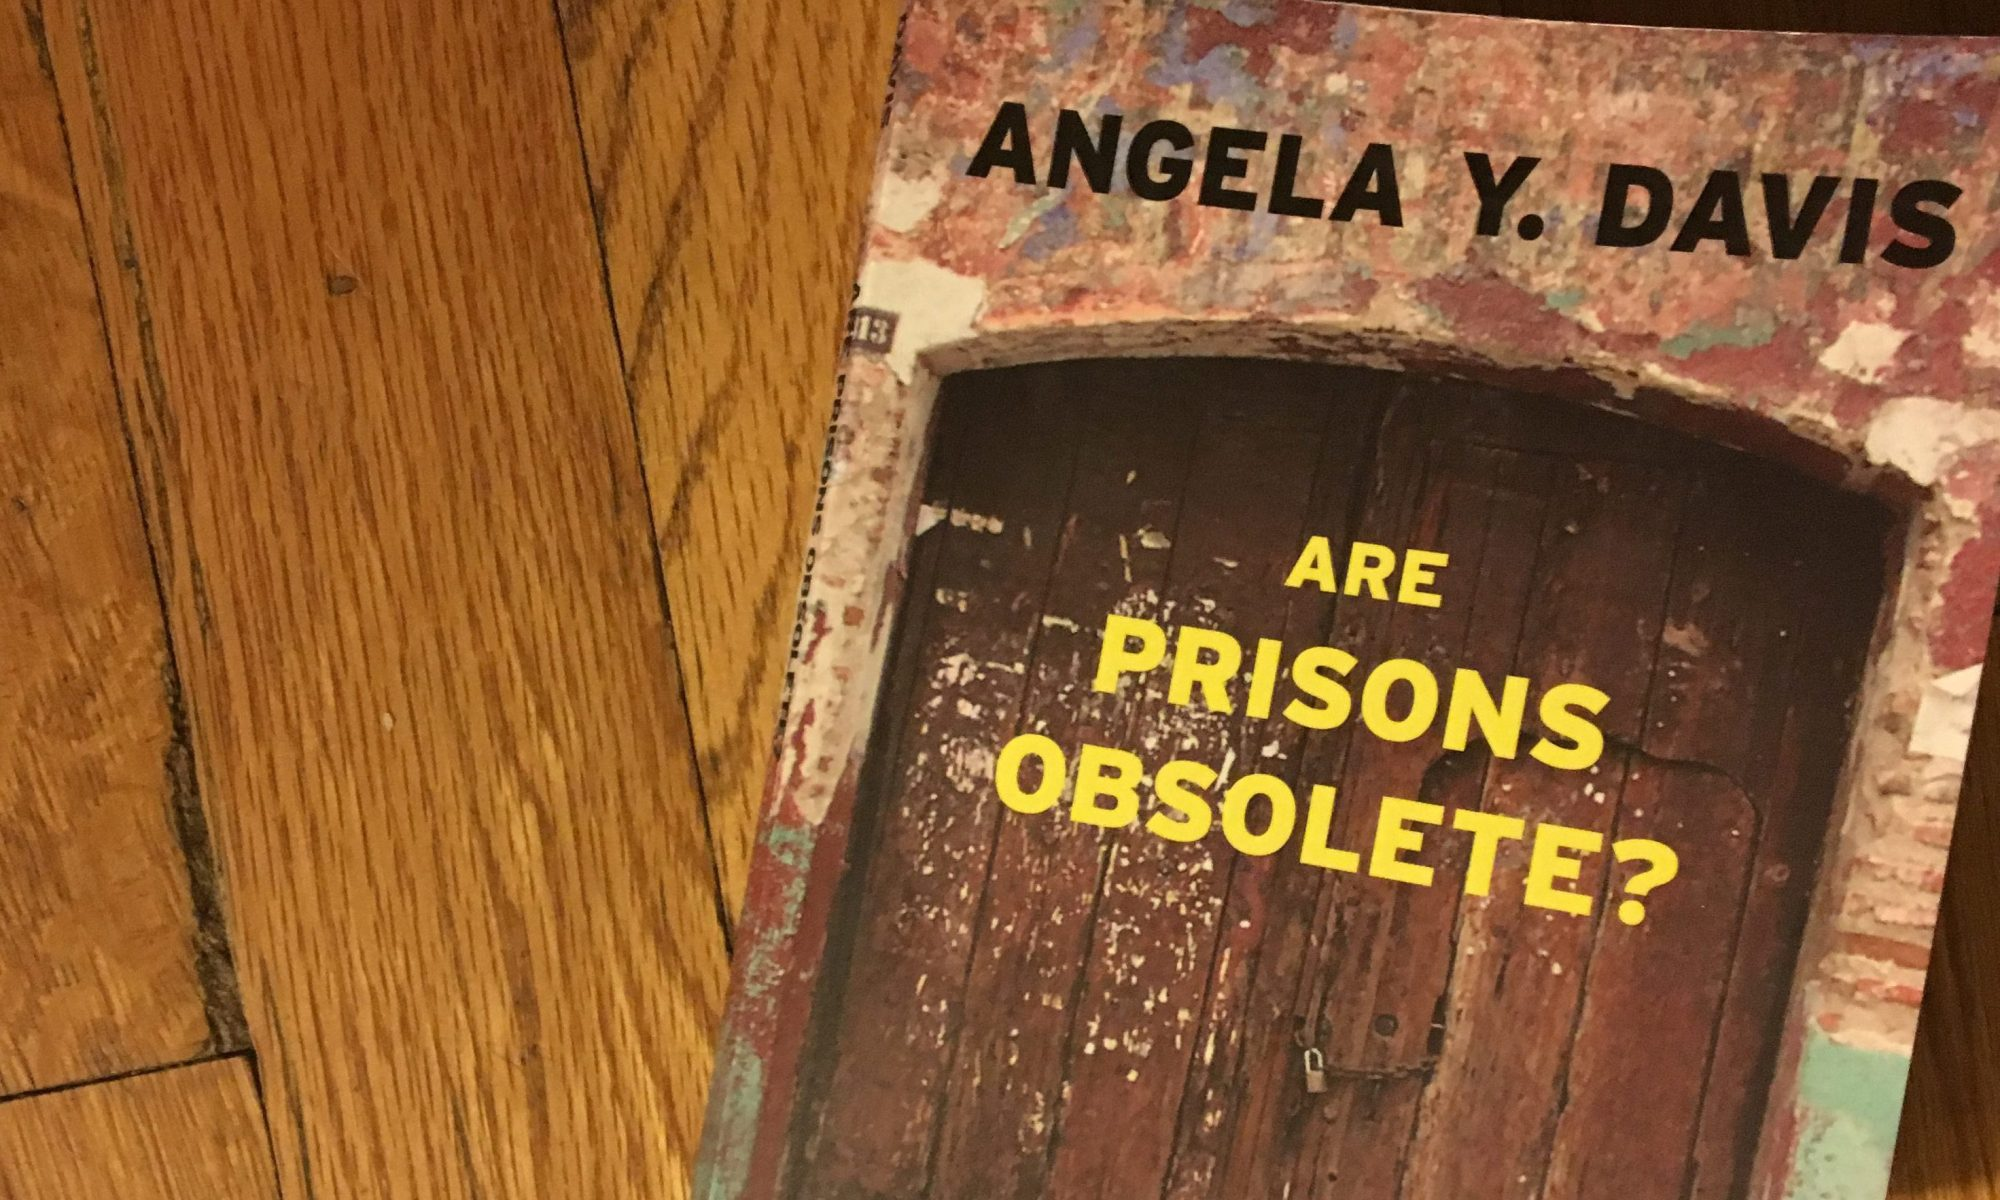 Noted: Are prisons obsolete?